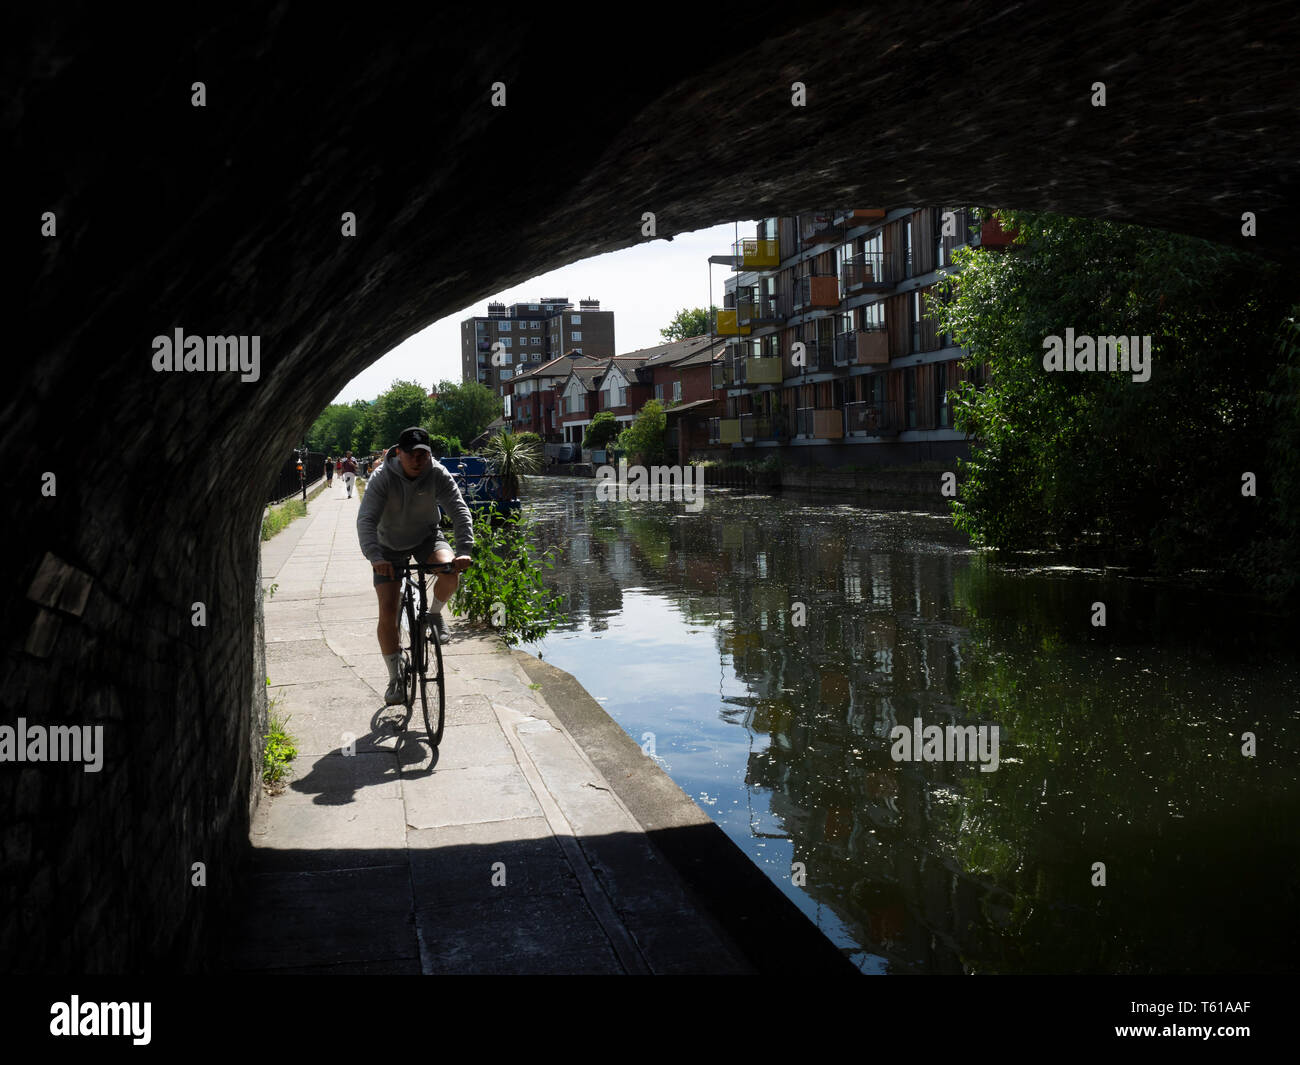 REGENT'S CANAL, LONDON:  Cyclist on Towpath under bridge - Stock Image